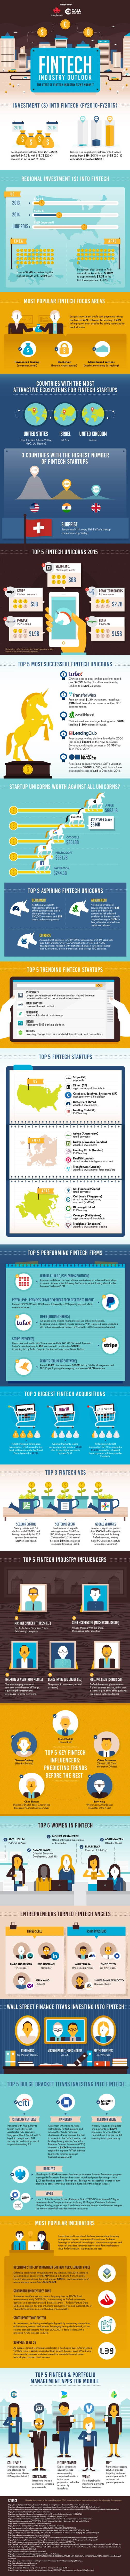 Fintech Industry Outlook 2016